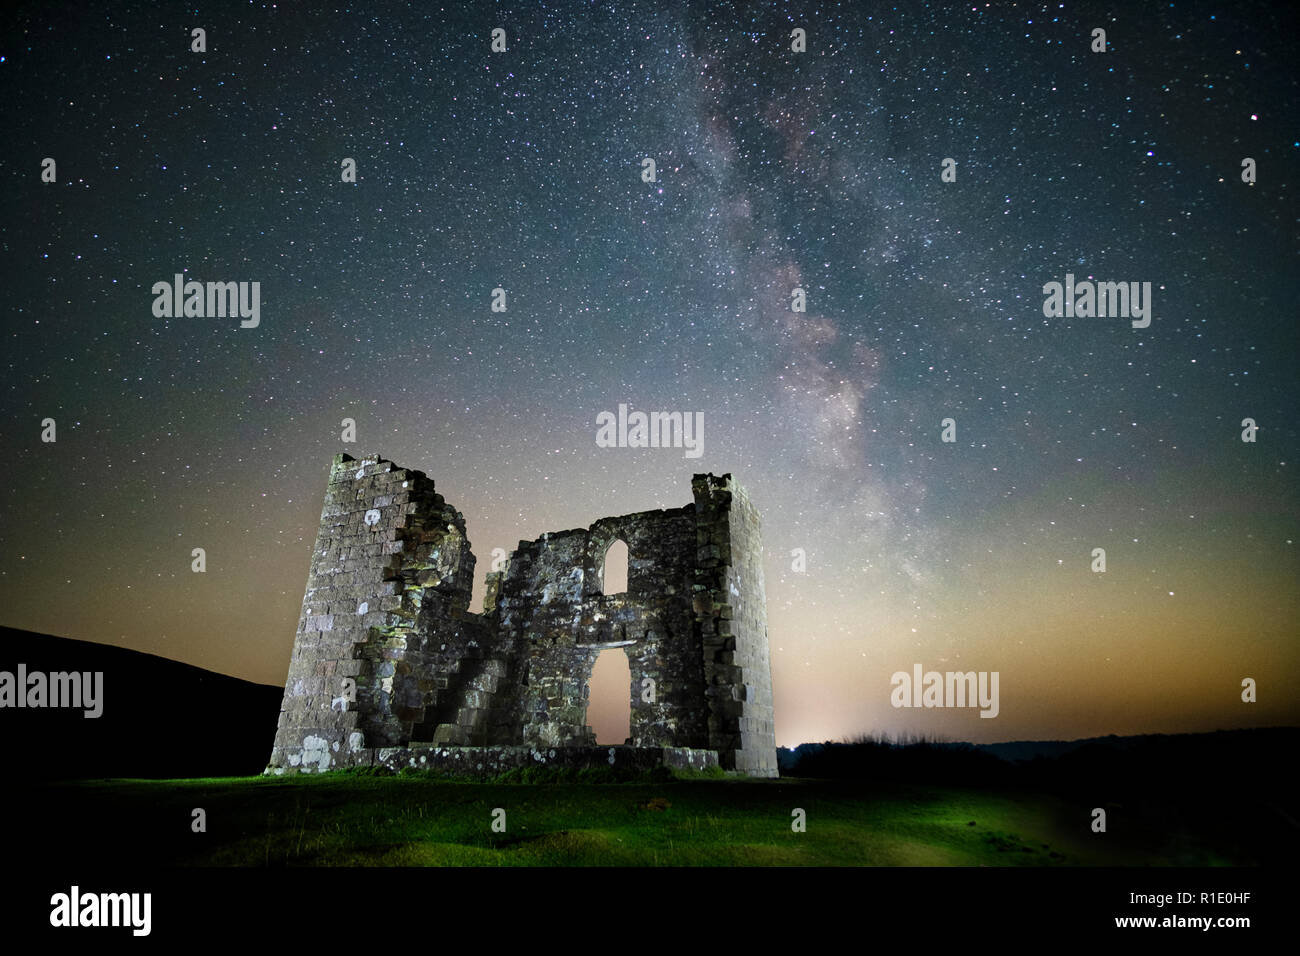 The milky way over Skelton Tower on the North York Moors near Levisham. - Stock Image